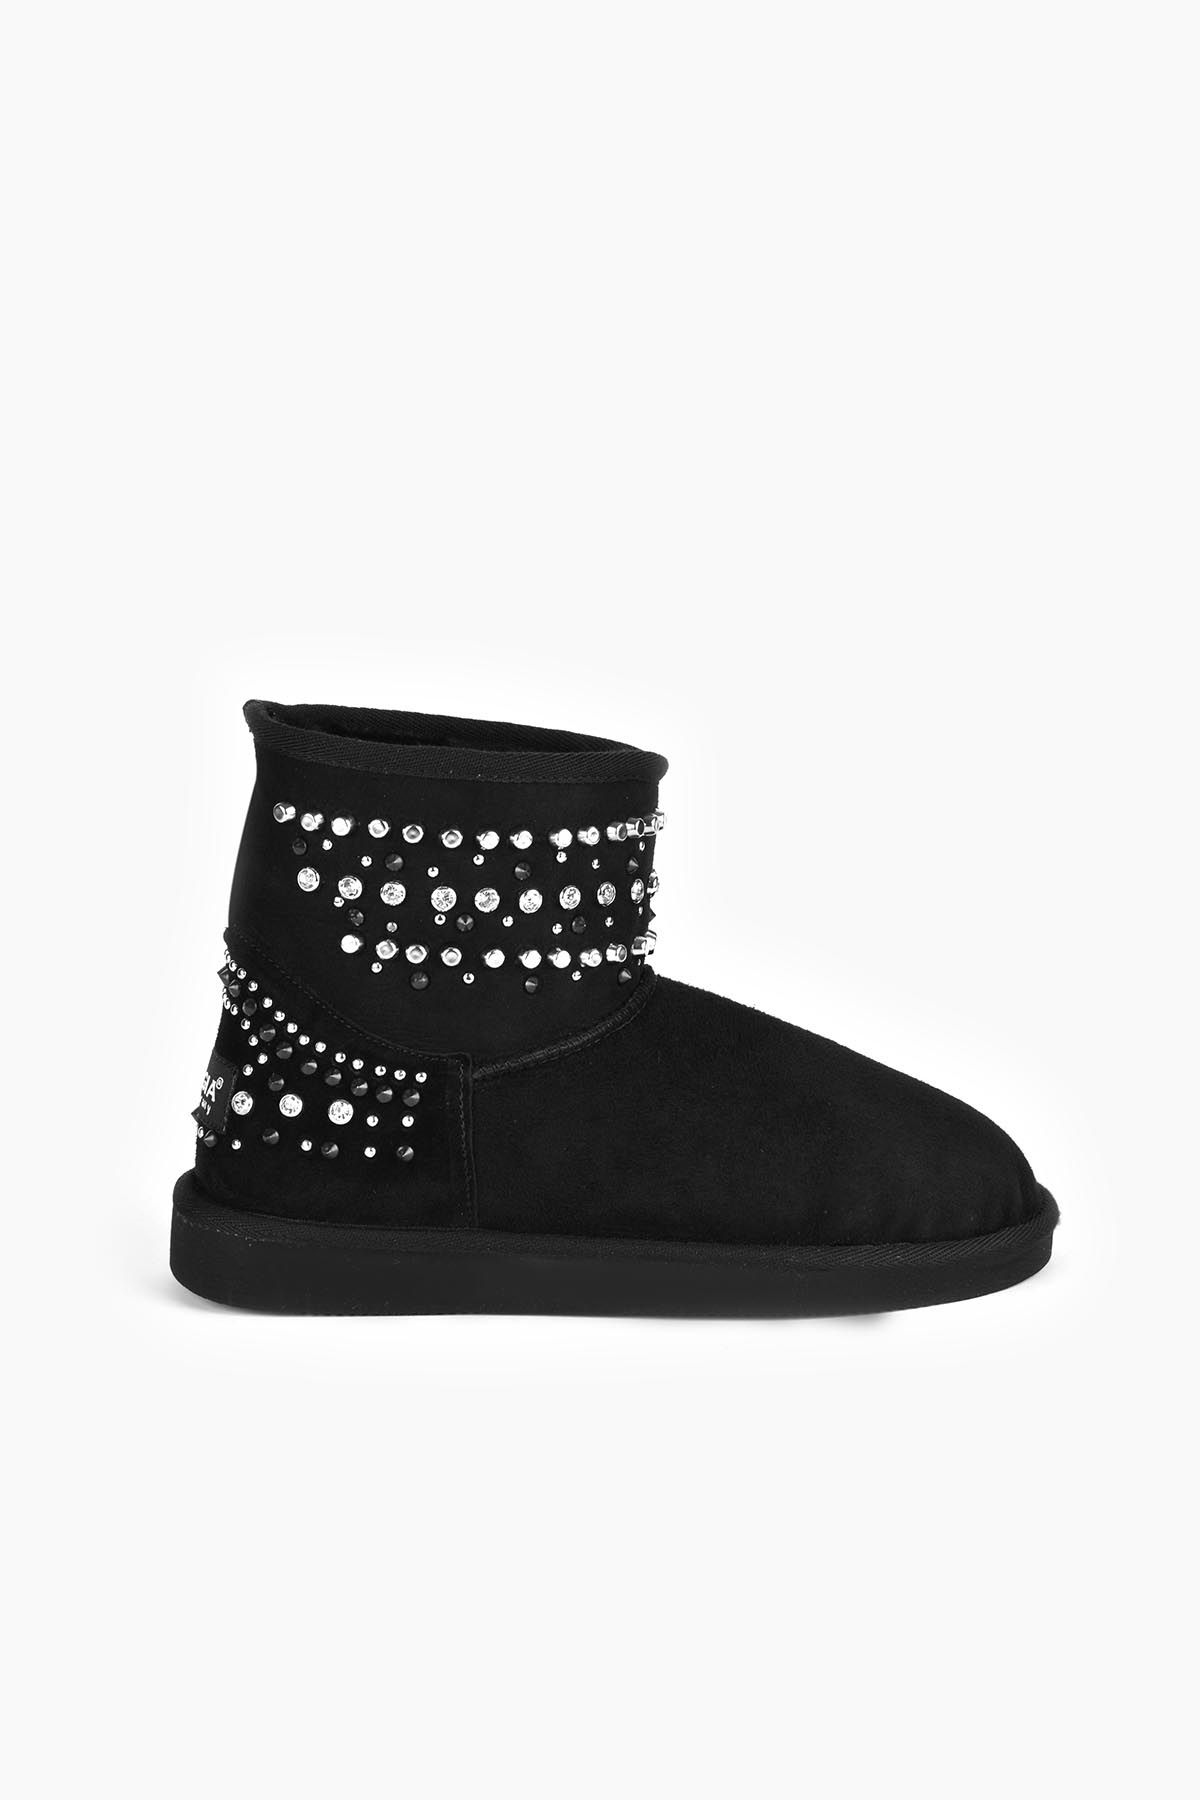 Pegia Women Ugg Style Boots From Genuine Suede And Sheepskin Fur Decorated With Stones Black